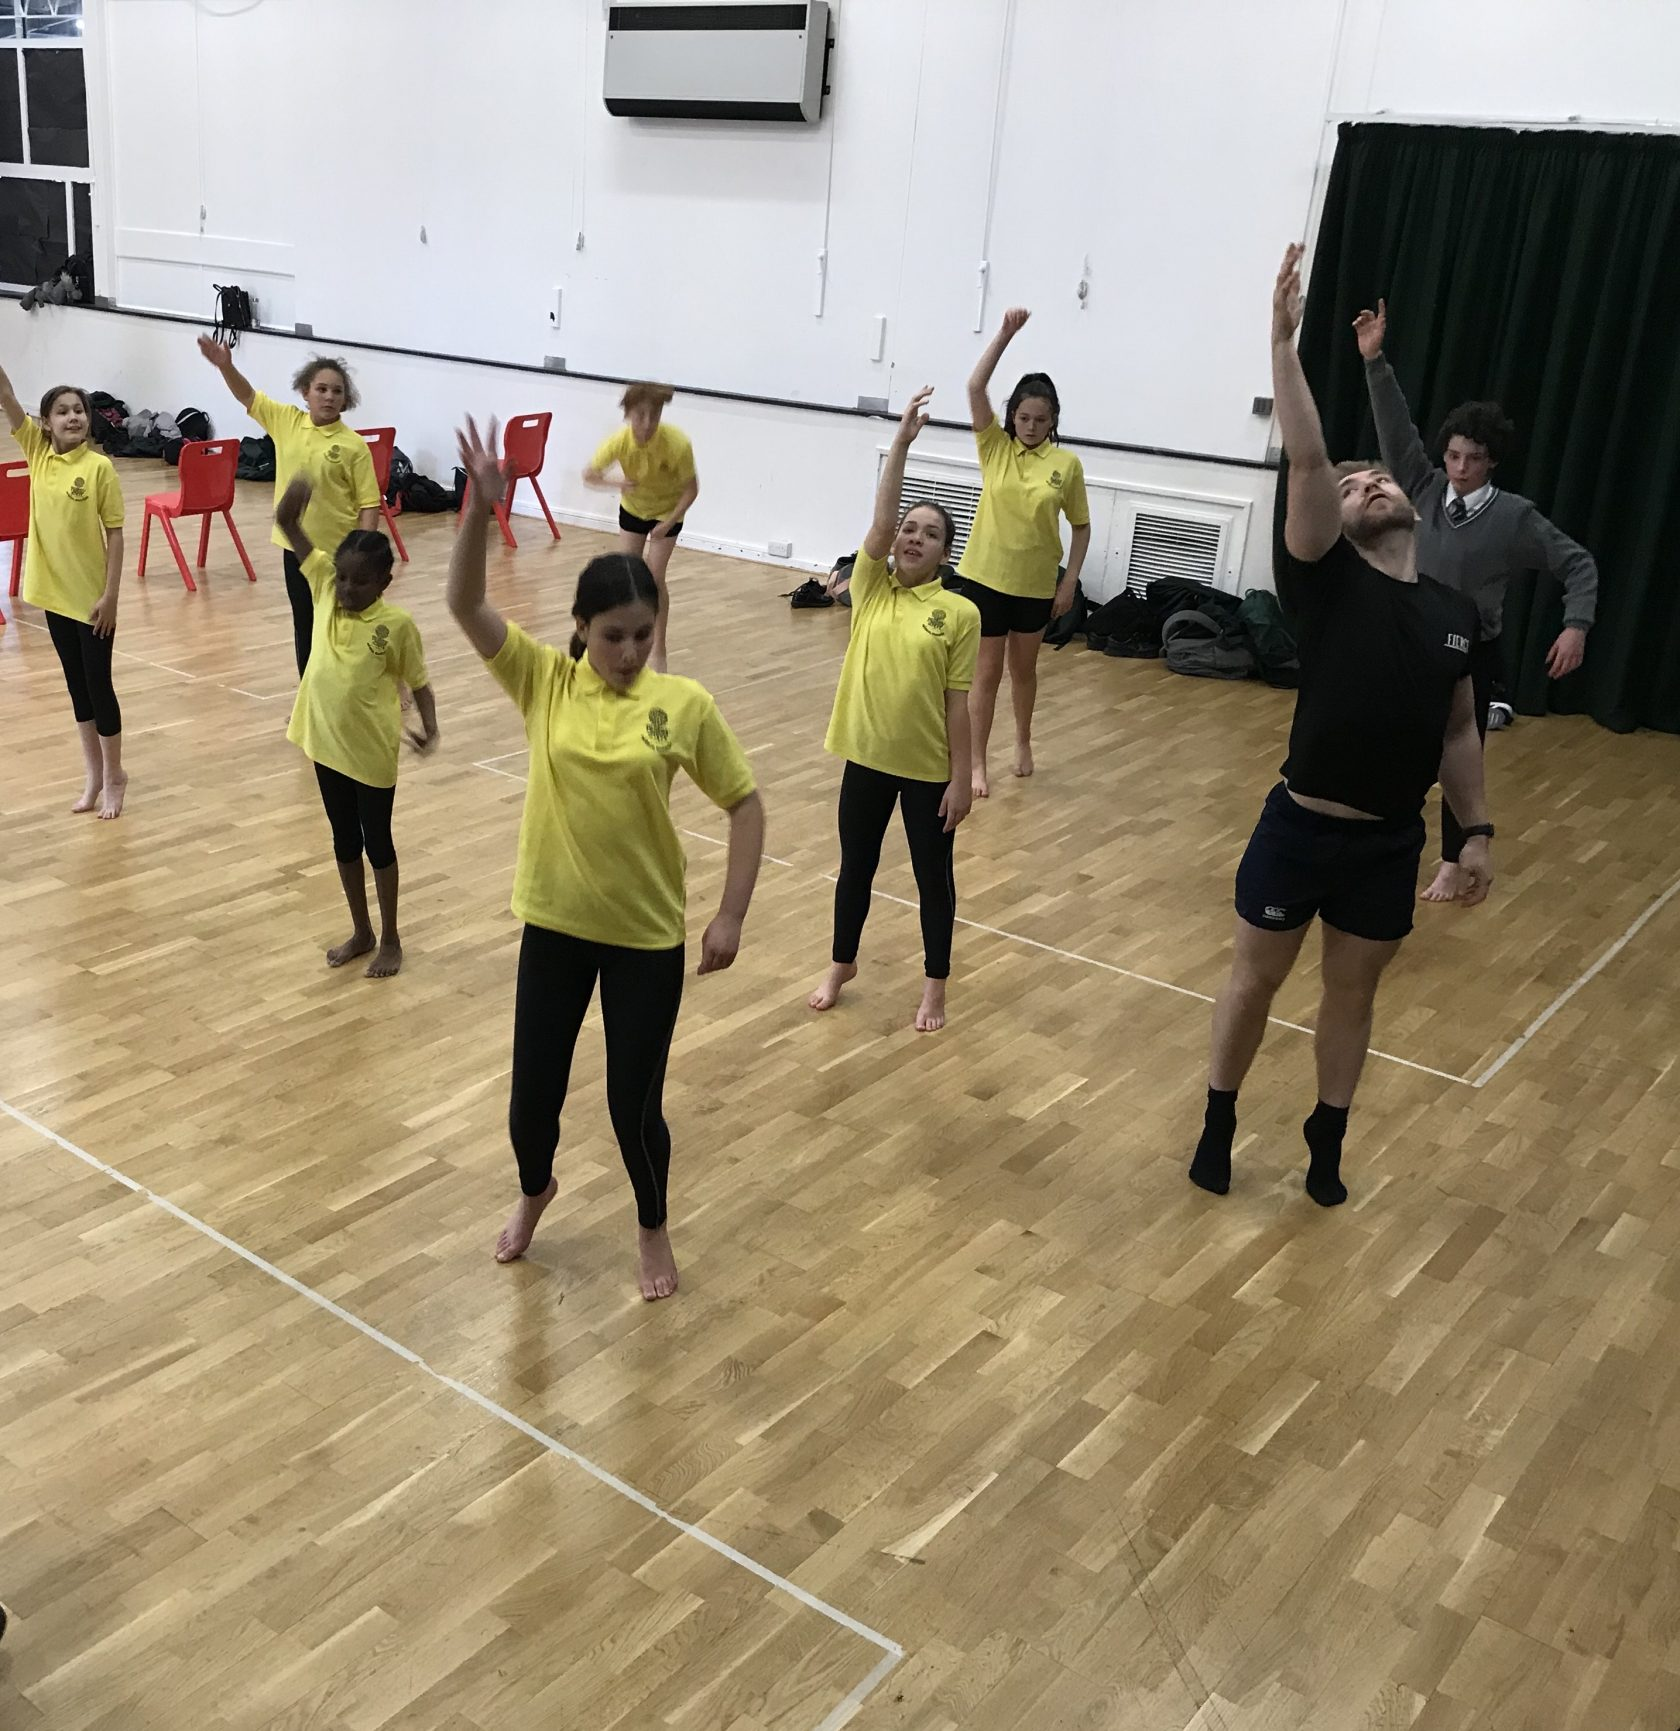 Audition for the Bushey Meads Dance Company